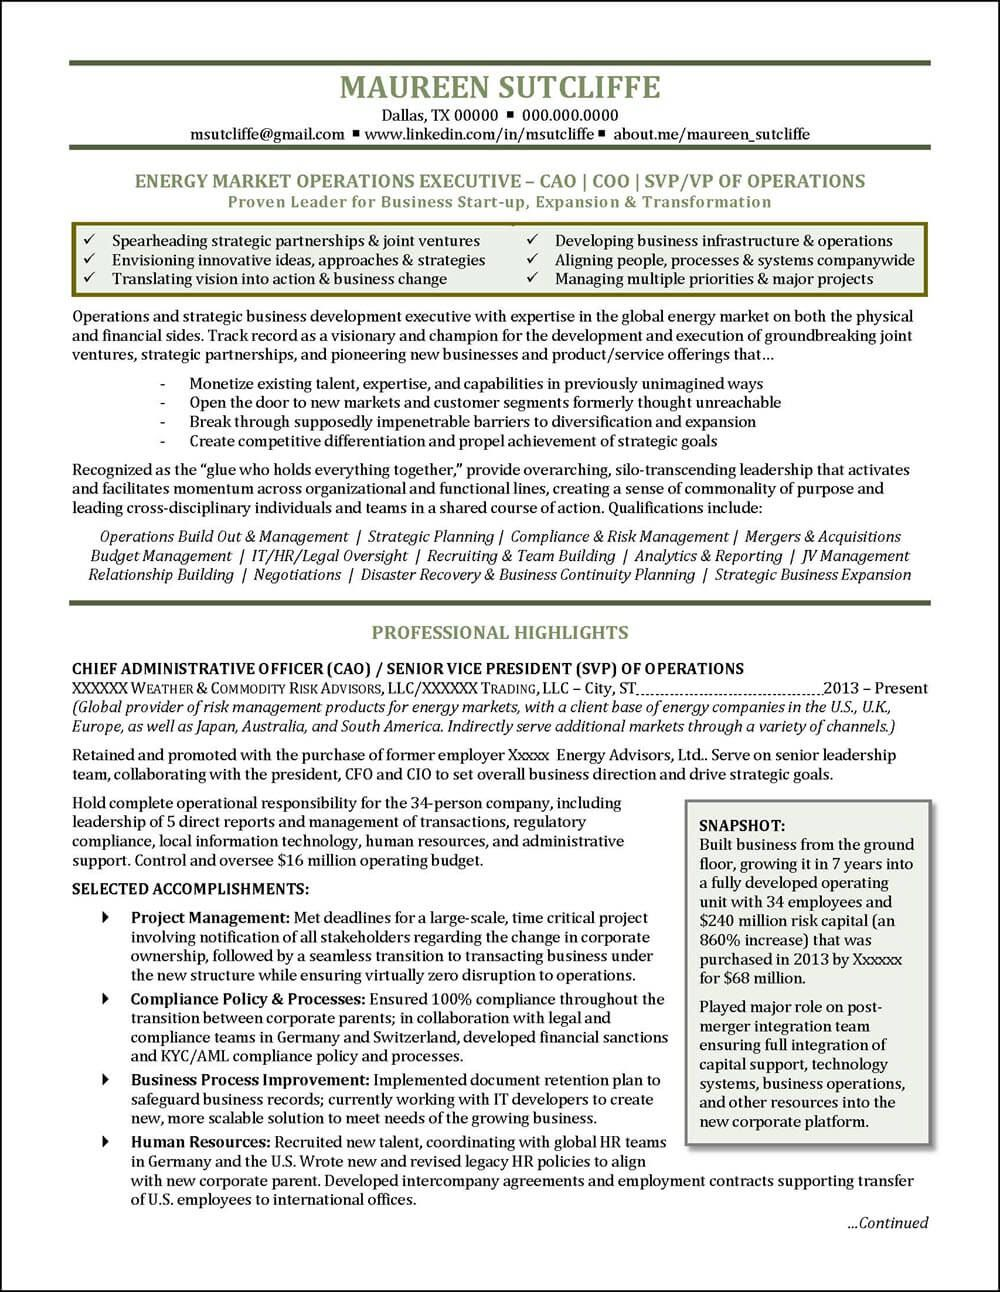 National Award Winning Executive Resume Examples Executive Cover Letter Examples Infographic Resume Executive Resume Resume Examples Cover Letter For Resume